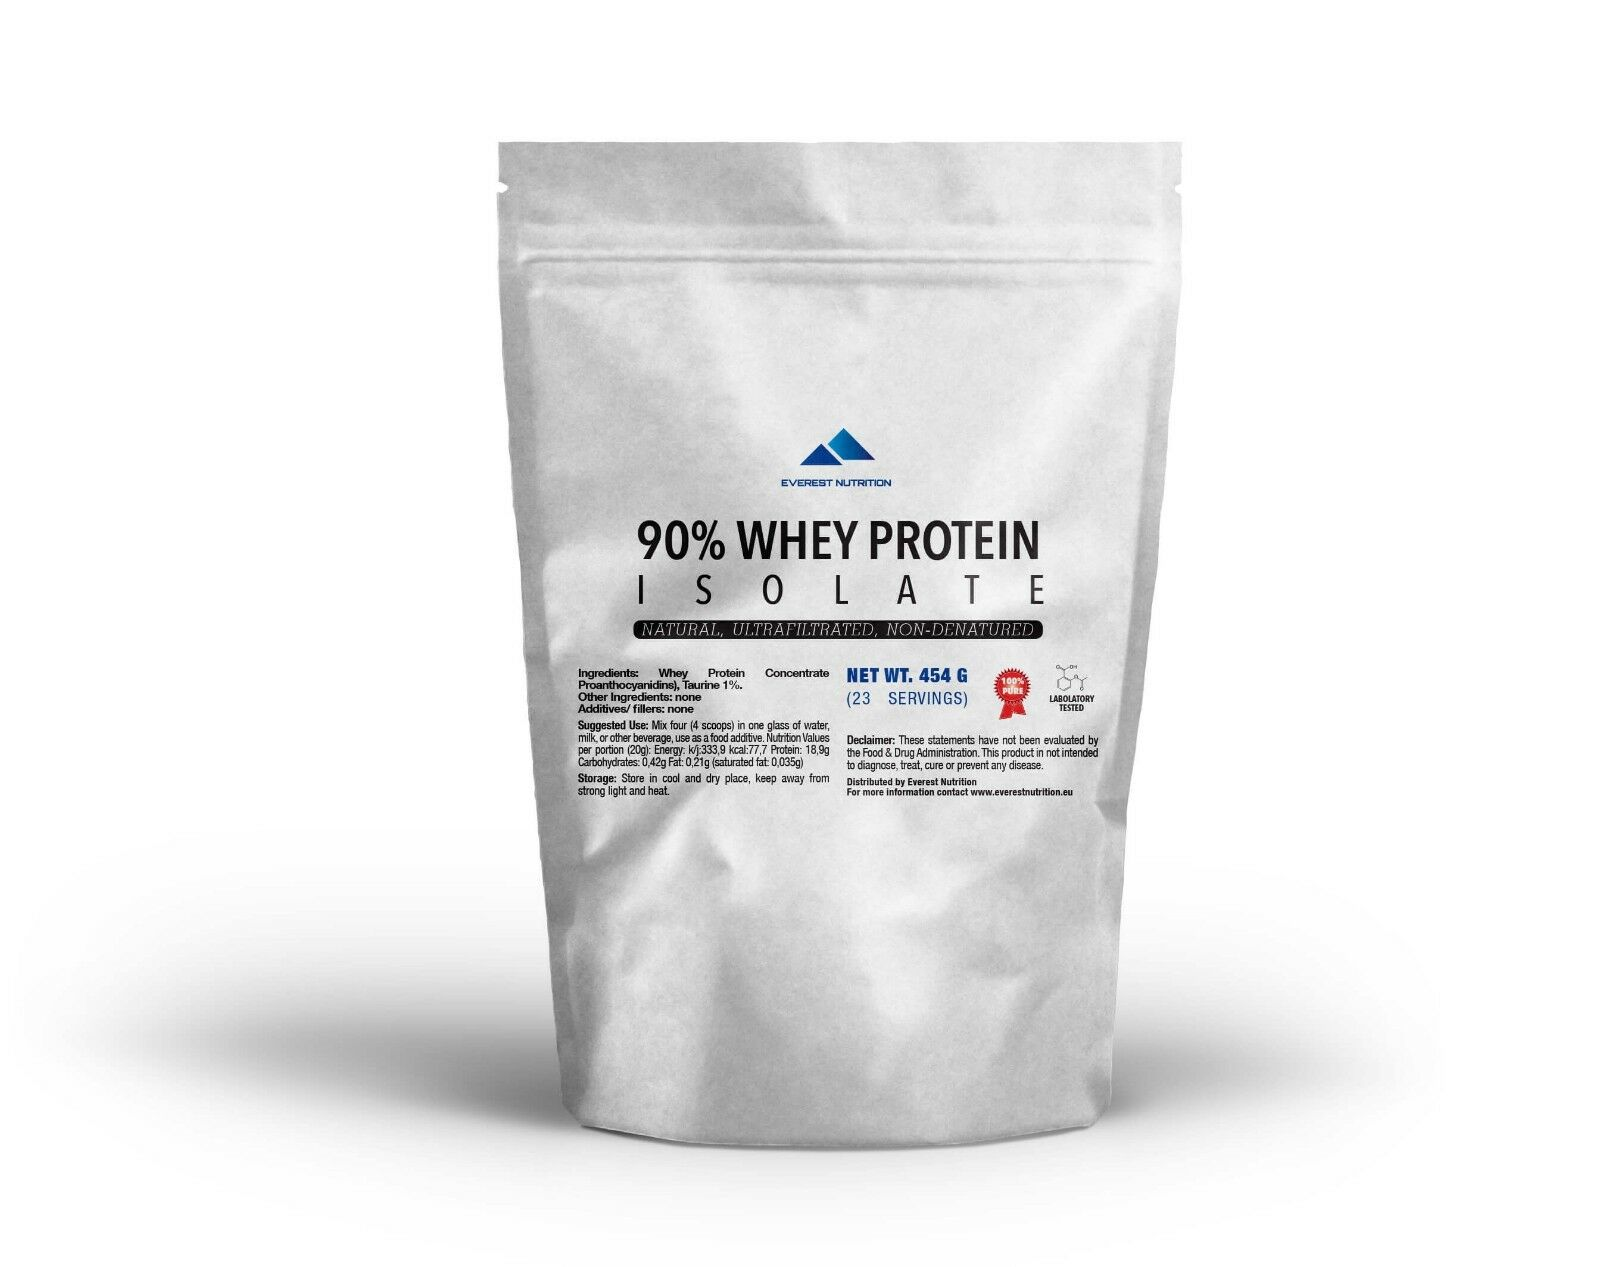 WHEY PROTEIN ISOLATE 90% WPI NATURAL FLAVOUR